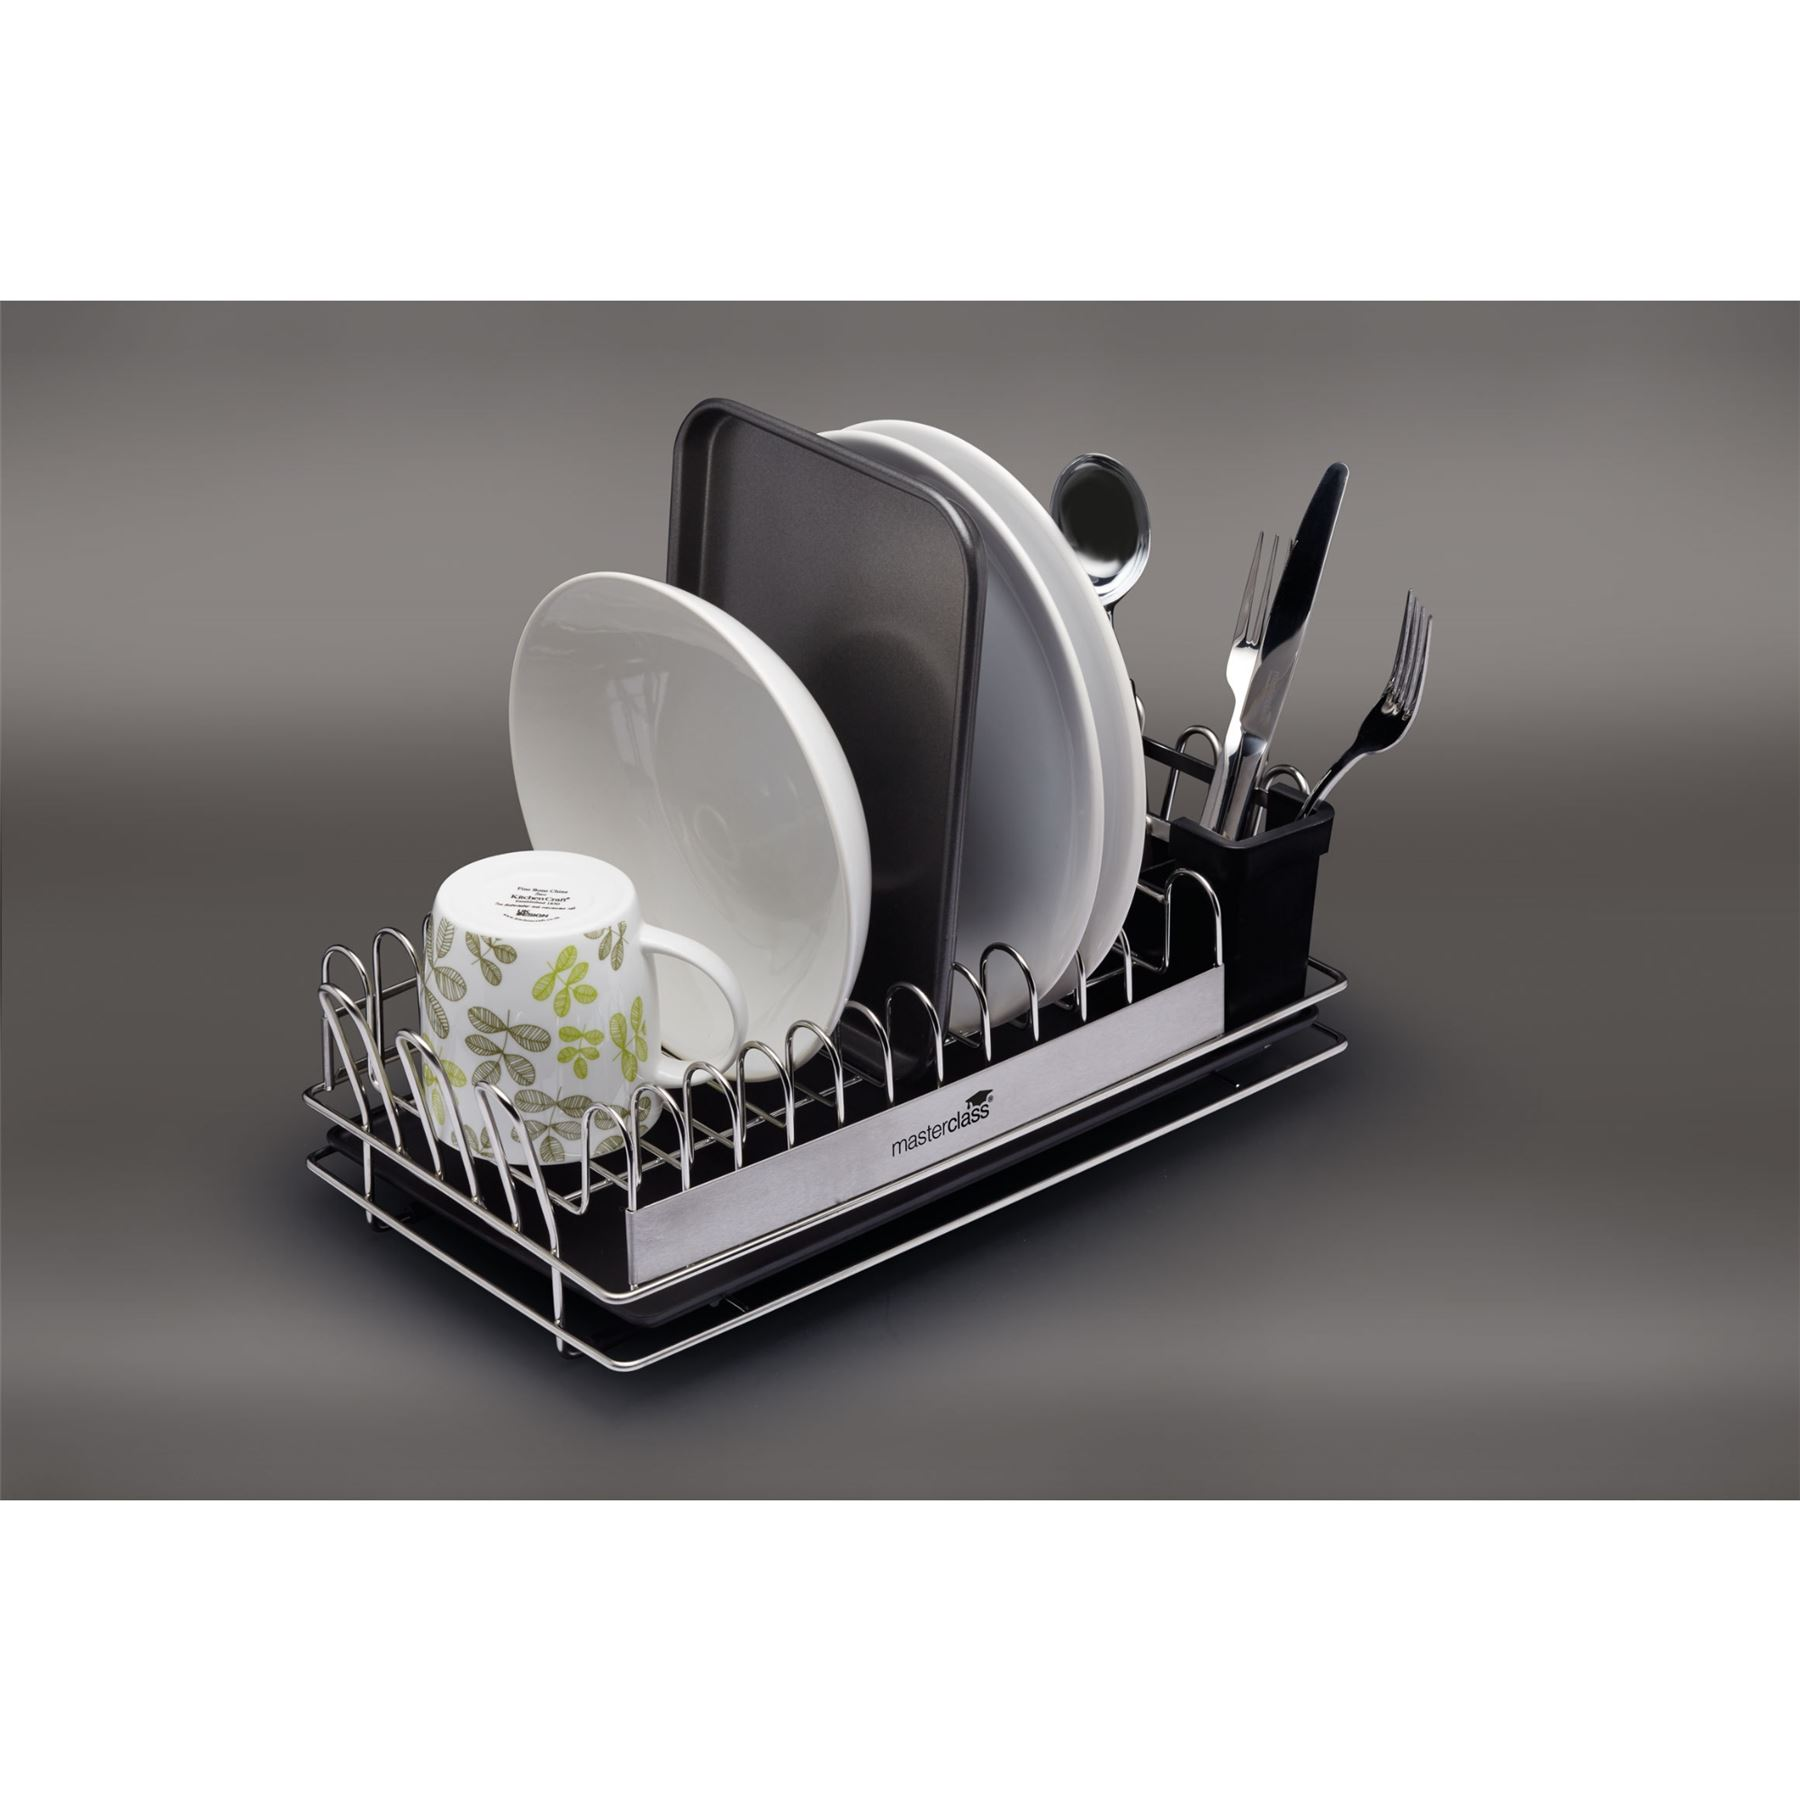 masterclass compact stainless steel dish drainer mcdishcomp ebay. Black Bedroom Furniture Sets. Home Design Ideas